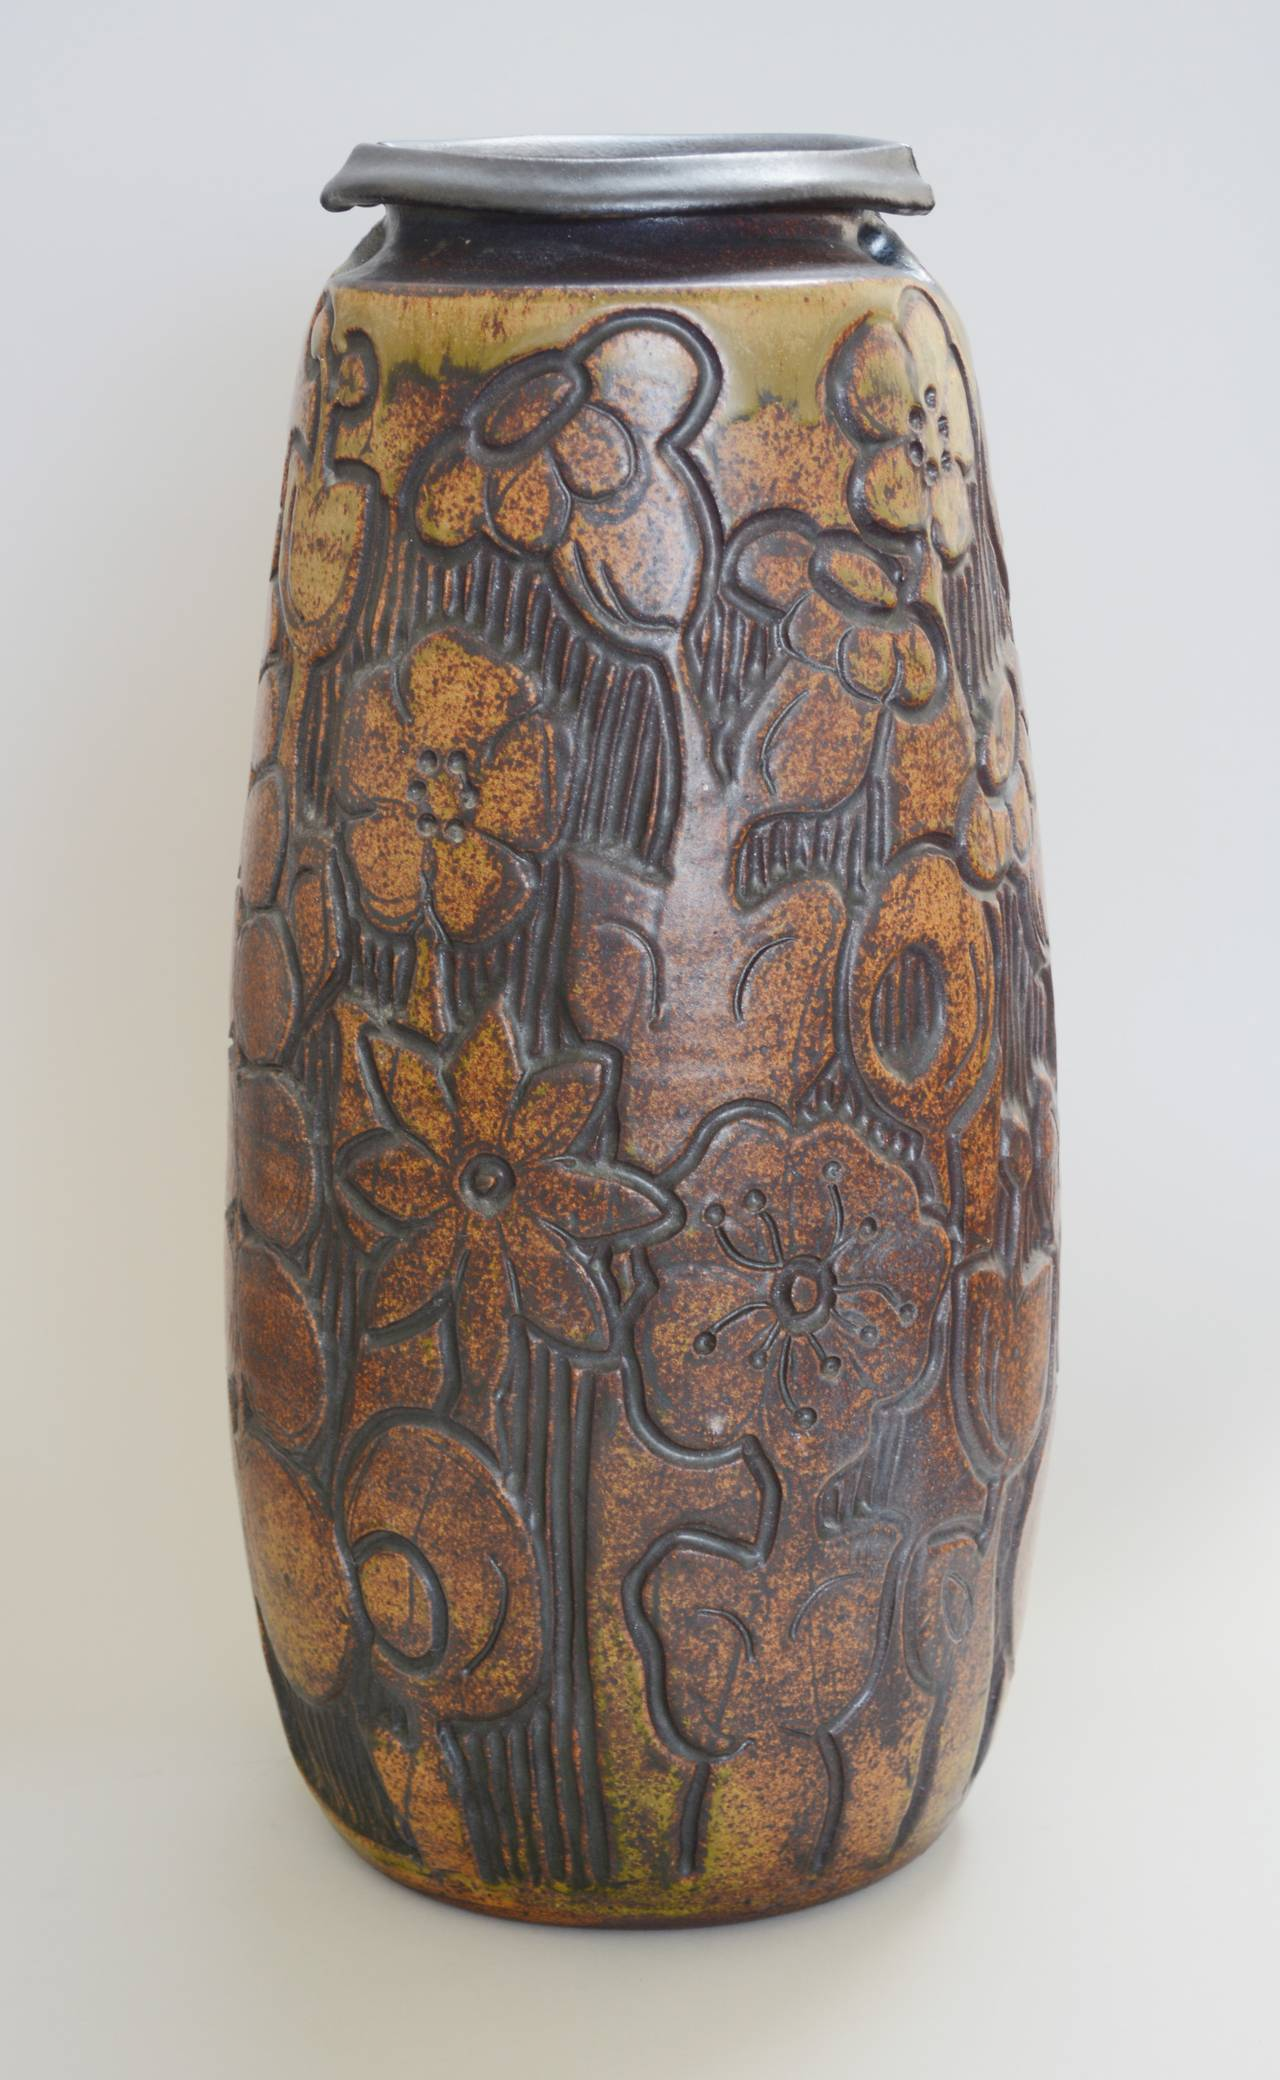 Monumental andrew bergloff studio pottery floor vase for sale at large stoneware floor vase by california studio potter andrew bergloff this vase has a carved reviewsmspy